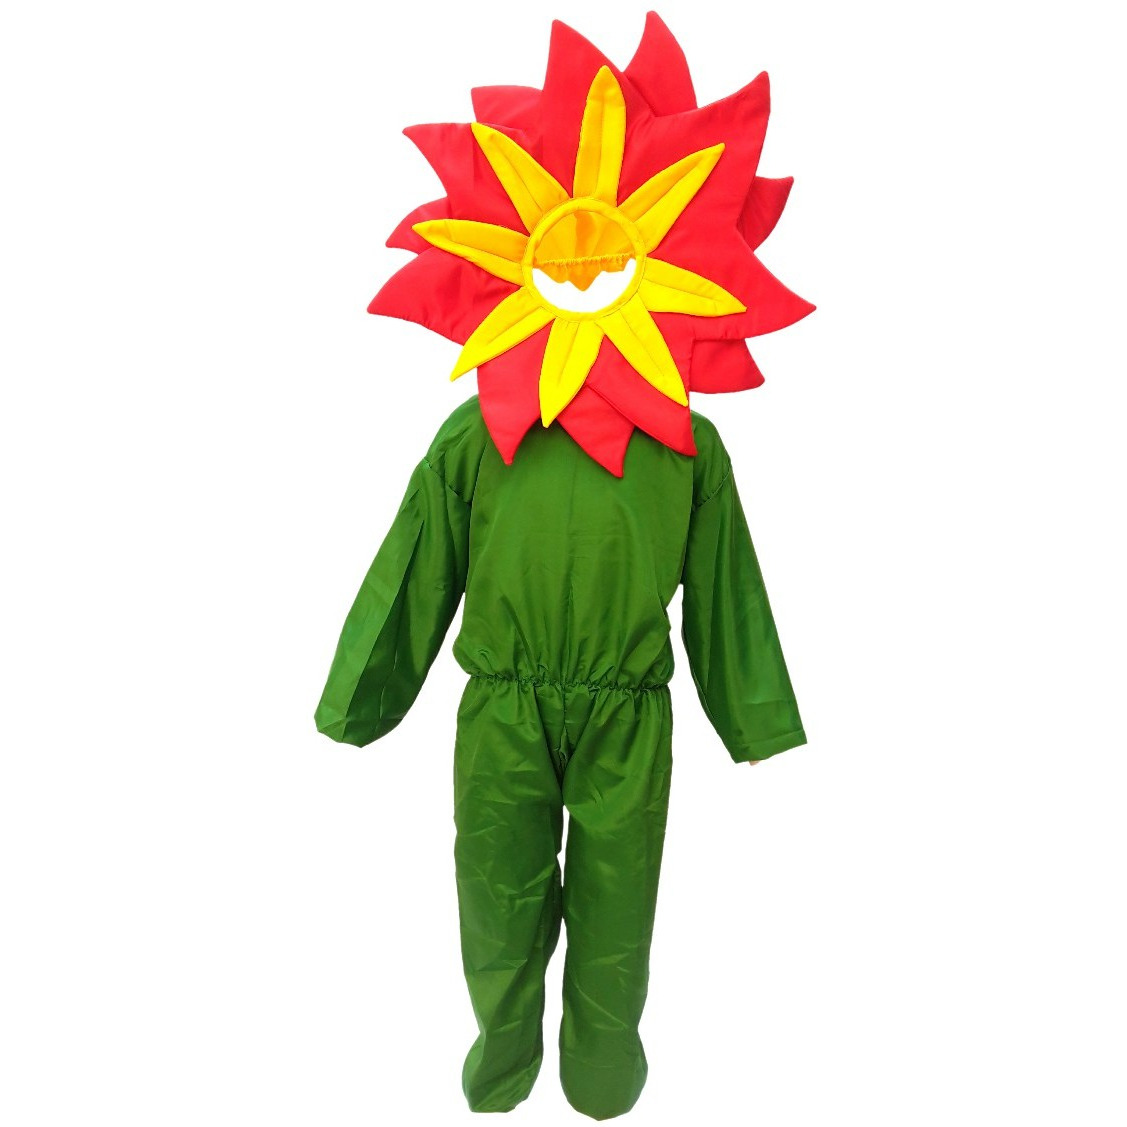 KFD Red flower fancy dress for kids,Nature Costume for Annual function/Theme Party /Stage Shows/Competition/Birthday Party Dress